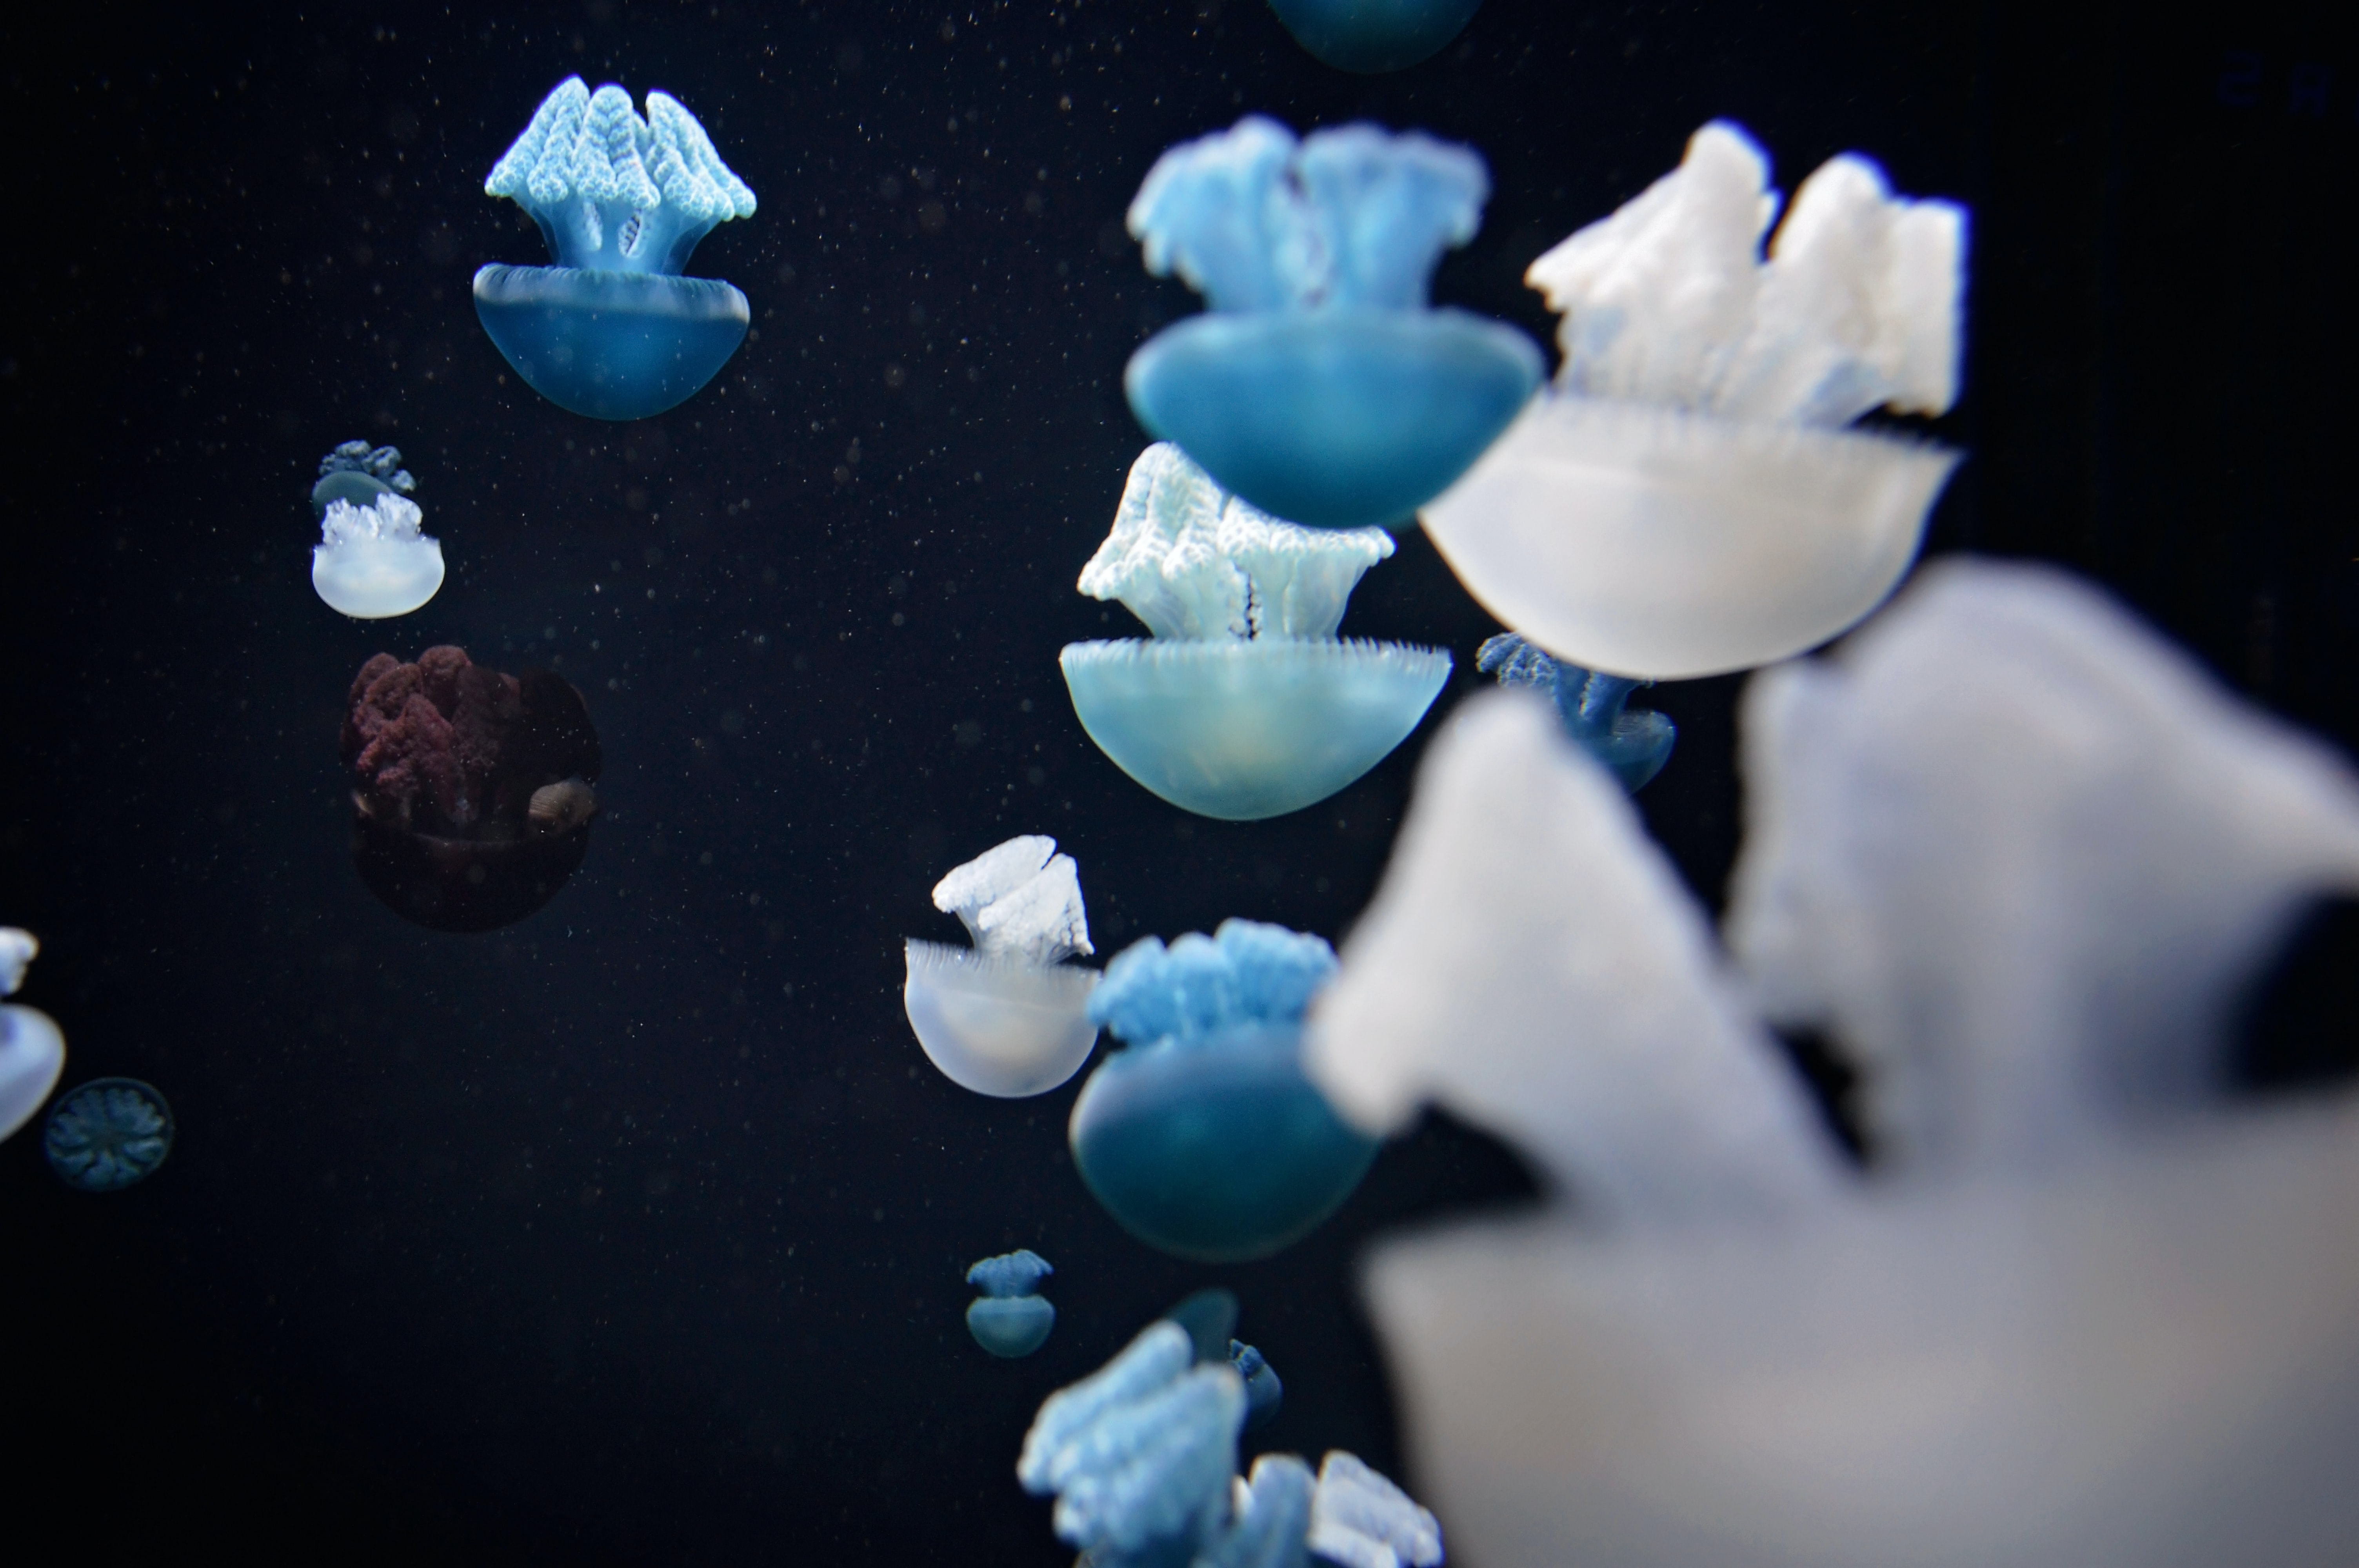 A swarm of blue, white, and brown jellyfishes swimming underwater as seen in Baltimore